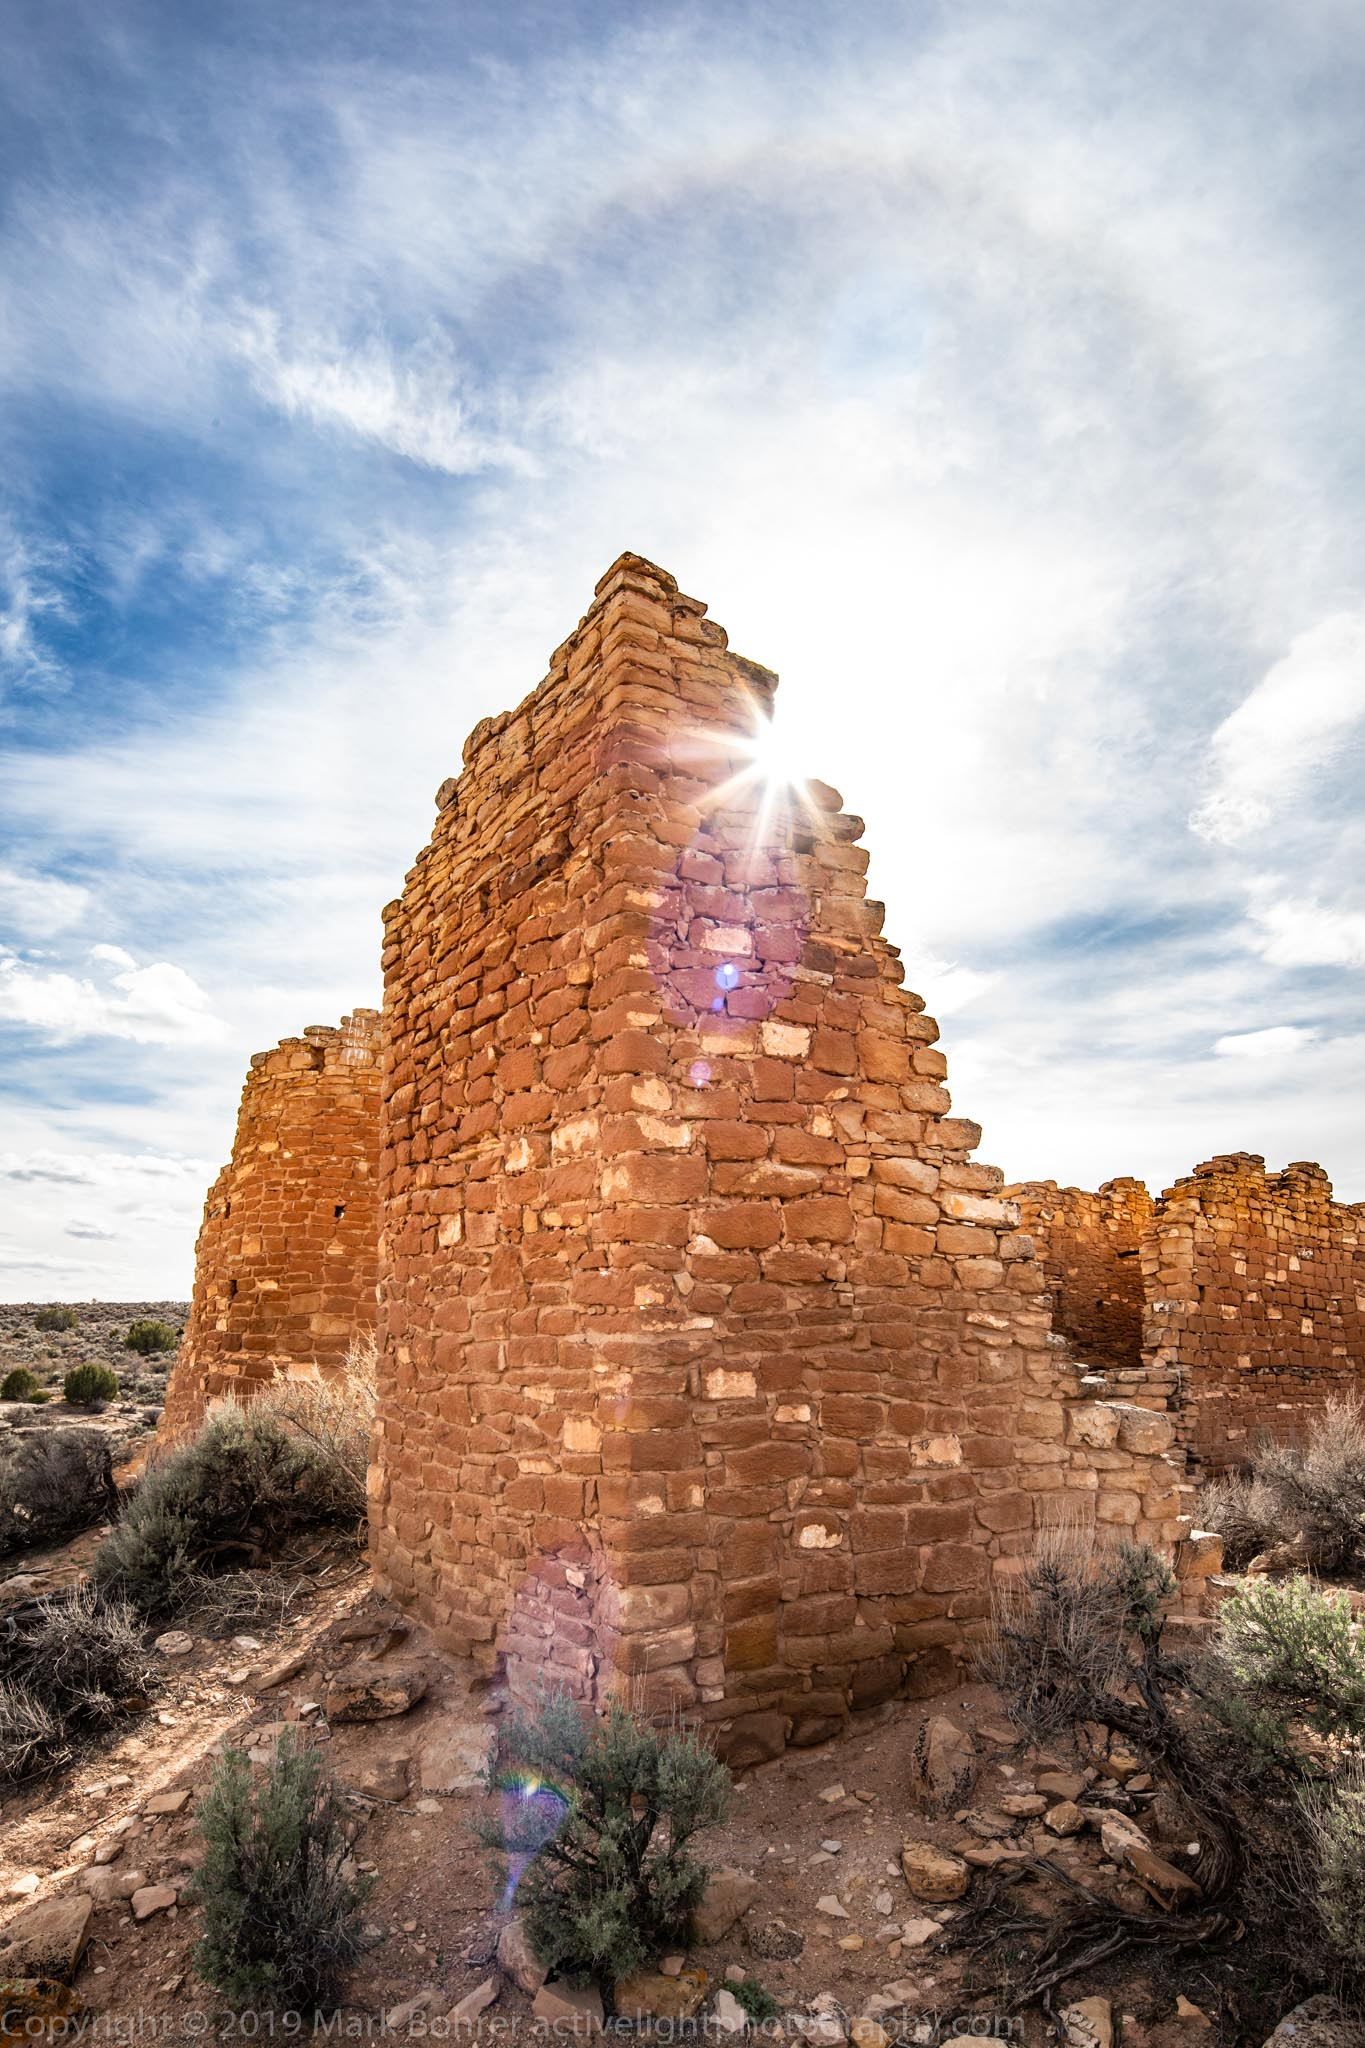 Diffraction sunstar and cloud spectre, Hovenweep Castle